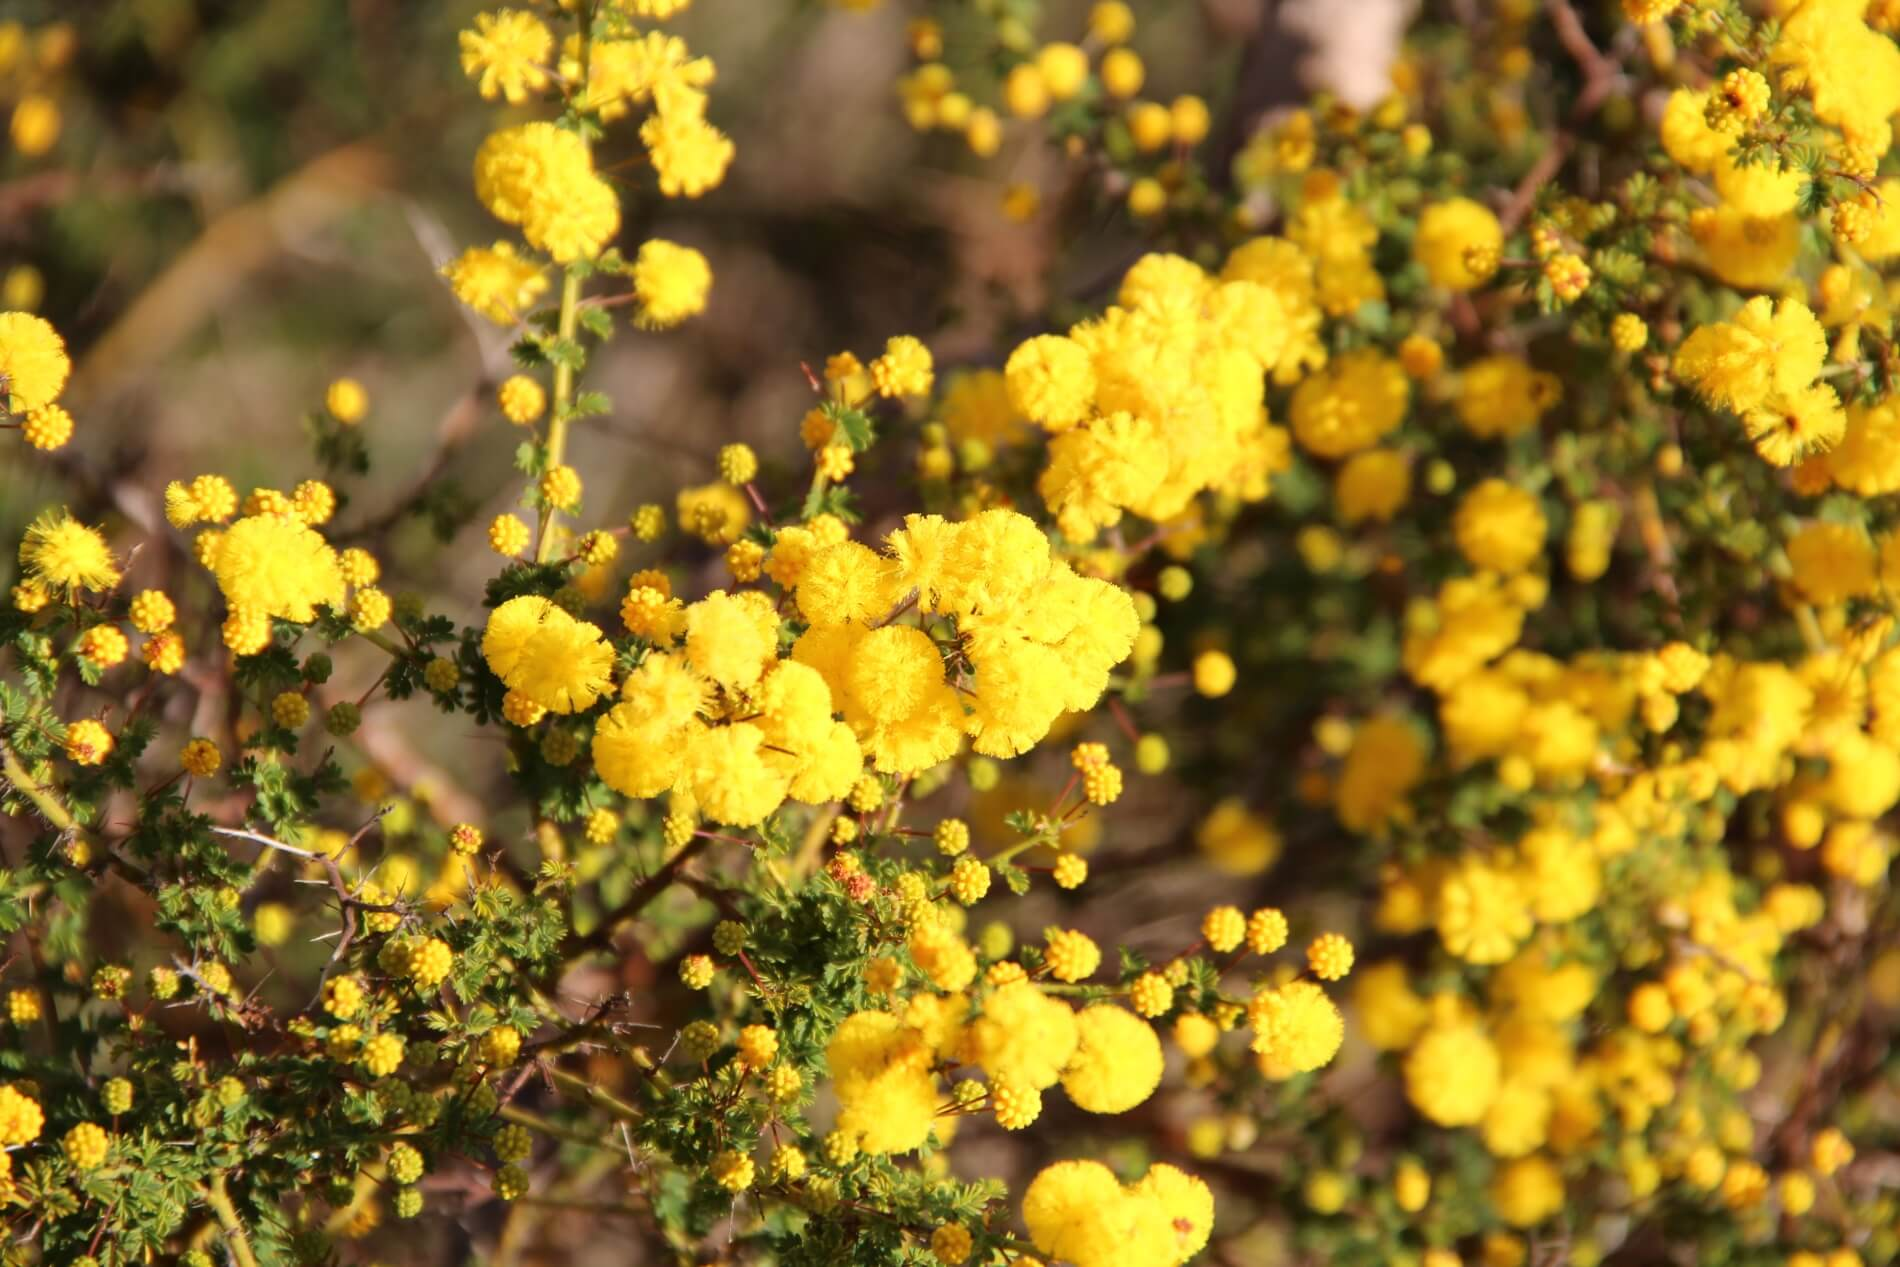 Spring Flowers in Perth Hills